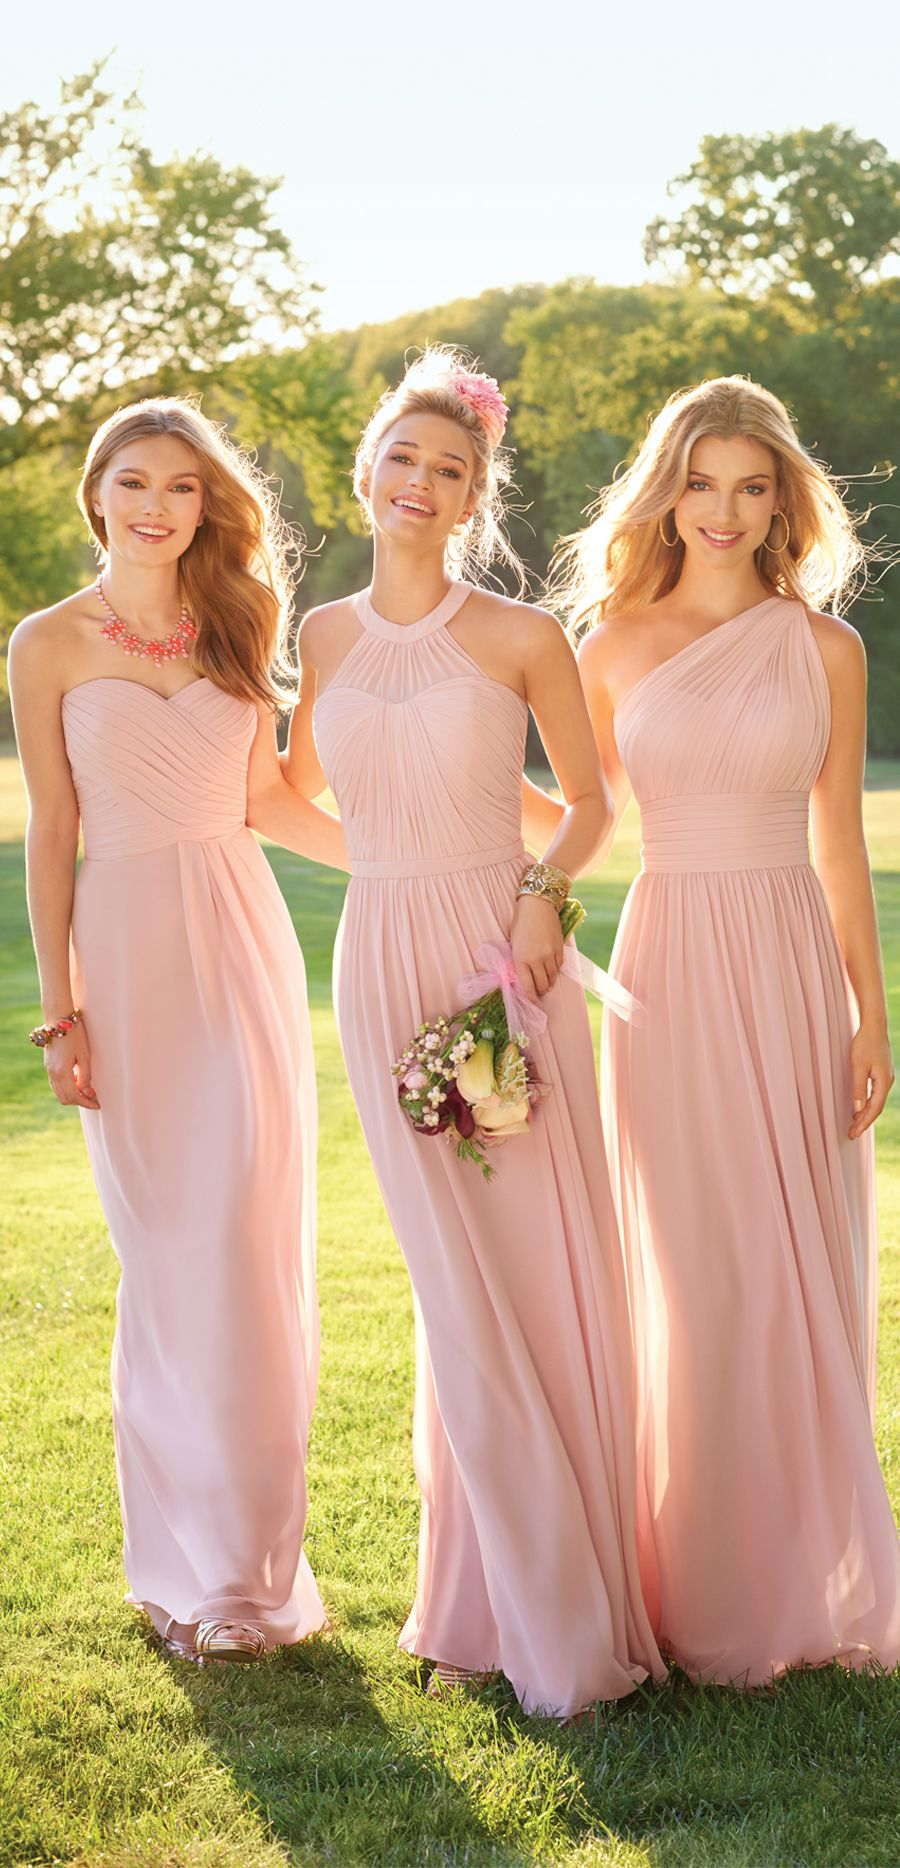 New additions to our bridesmaid collection! Shop beautiful bridesmaid  dresses for your girls now with Camille La Vie and make your wedding day bridal  party ... 2cd9531d32b8